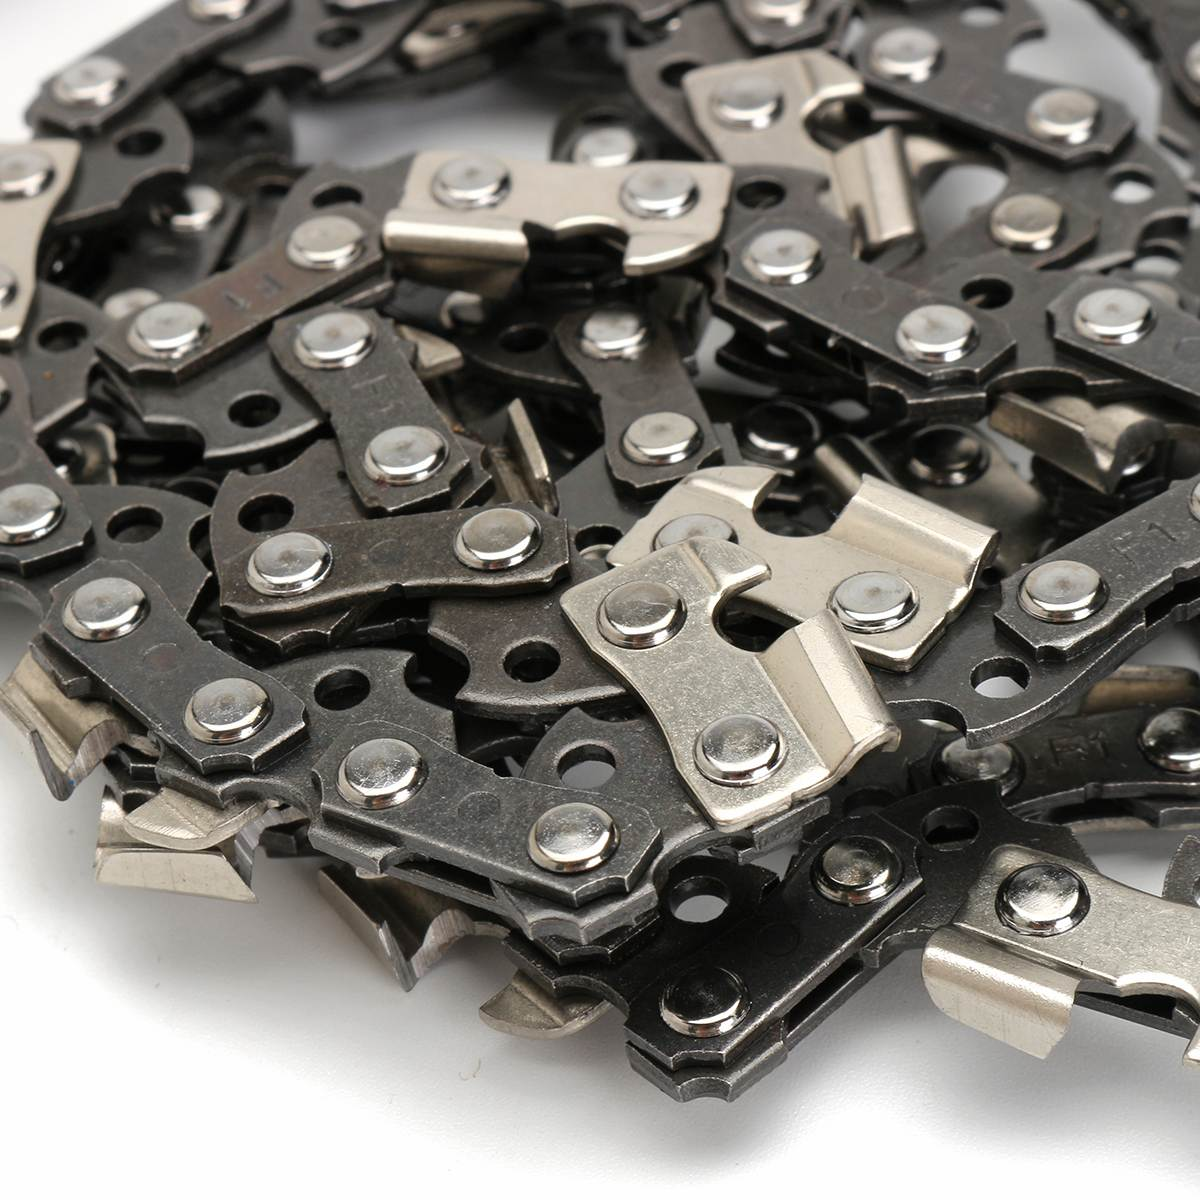 New durable 4pcs chainsaw files 50 52 chains for 14 mcculloch 335 new durable 4pcs chainsaw files 50 52 chains for 14 mcculloch 335 338 435 438 463 in tools from home garden on aliexpress alibaba group greentooth Images